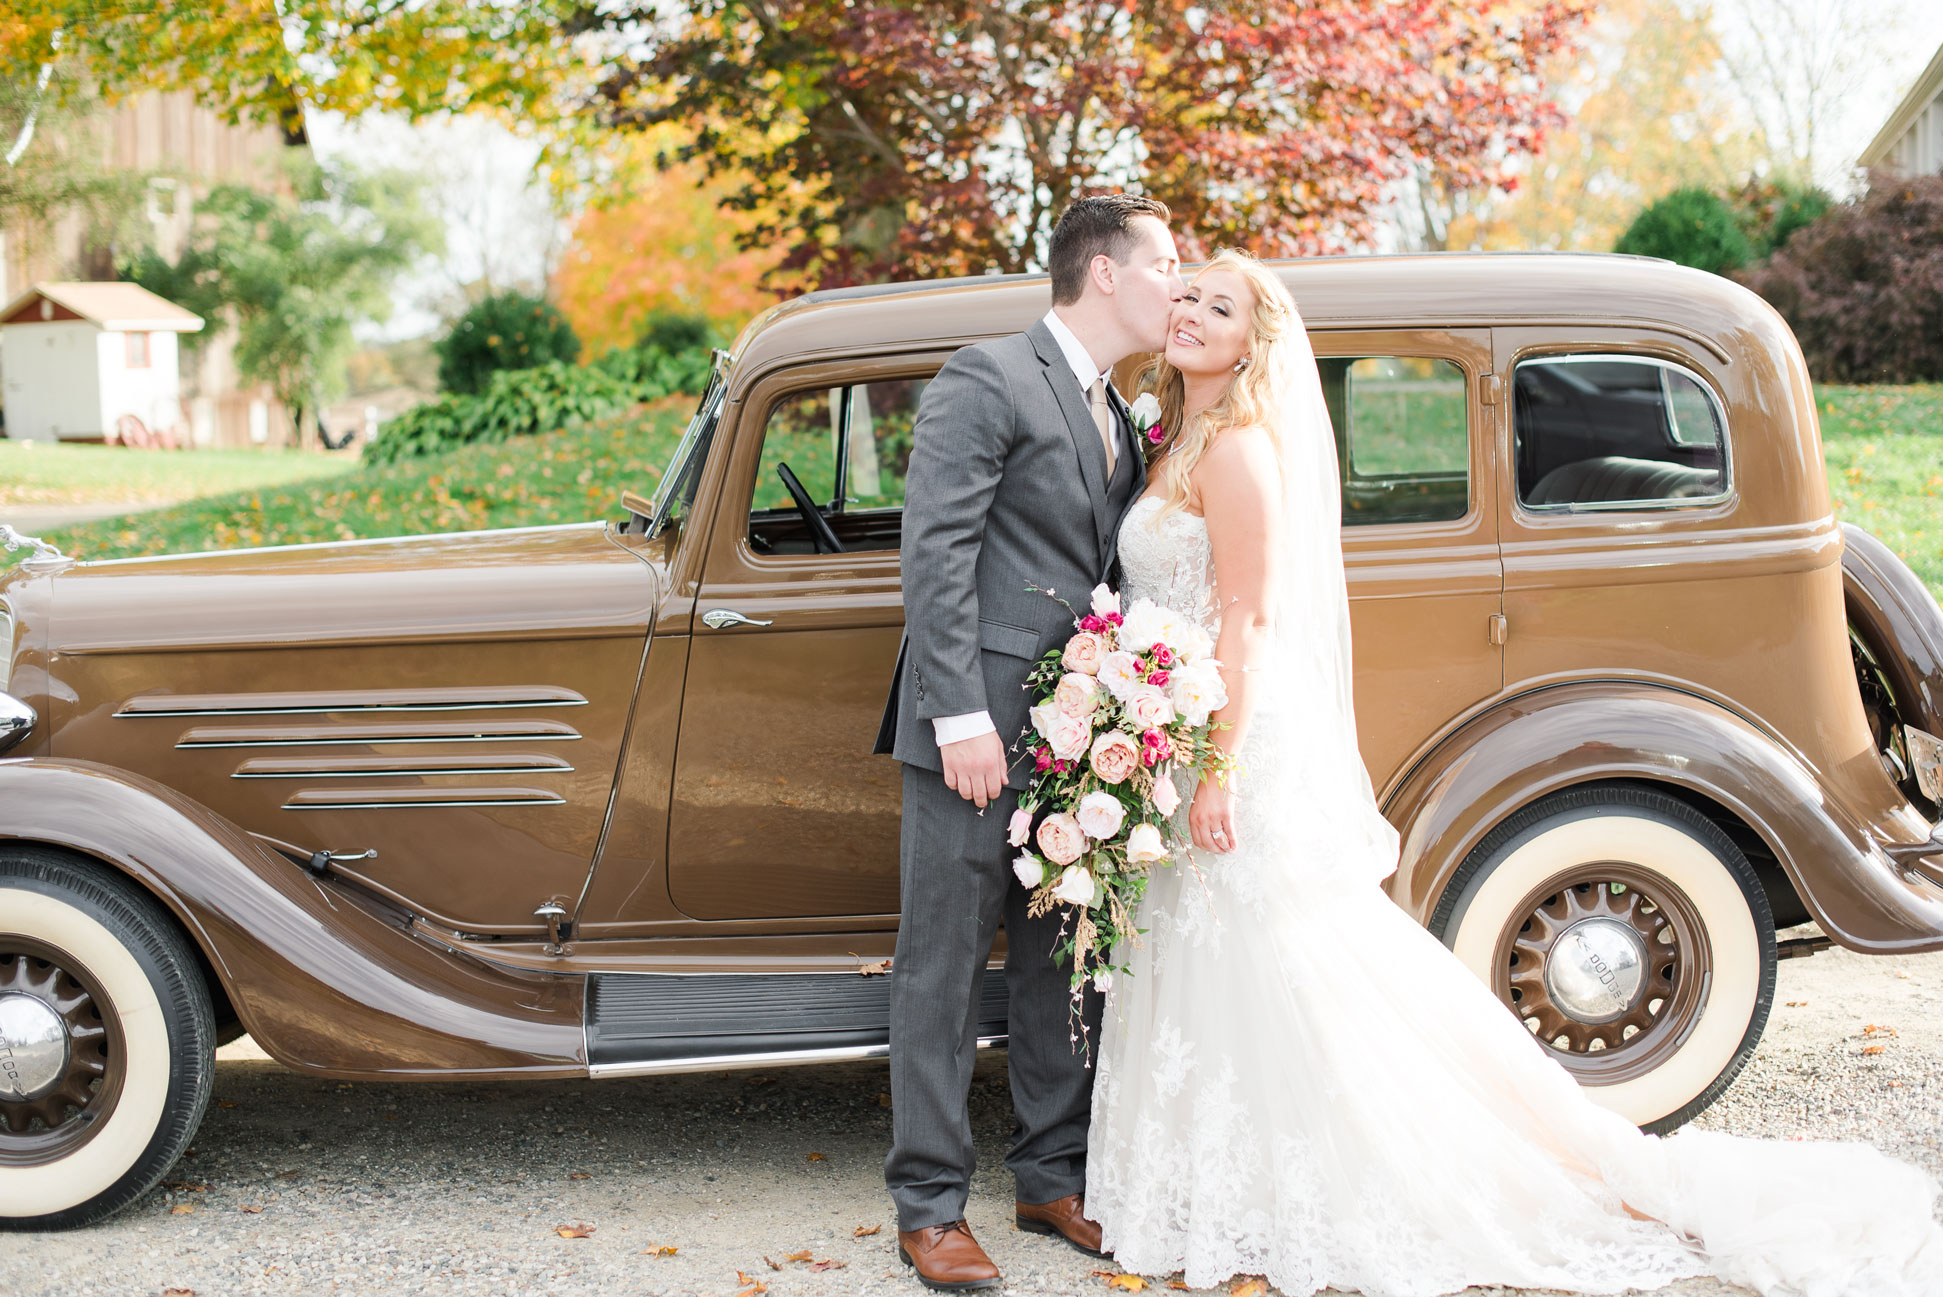 Kalyn + Michael - We are heading up north for this perfect fall barn wedding at Hilltop Manor Inn. Take a peek at their rustic chic wedding featuring a handmade wooden arbor made by the bride's father!